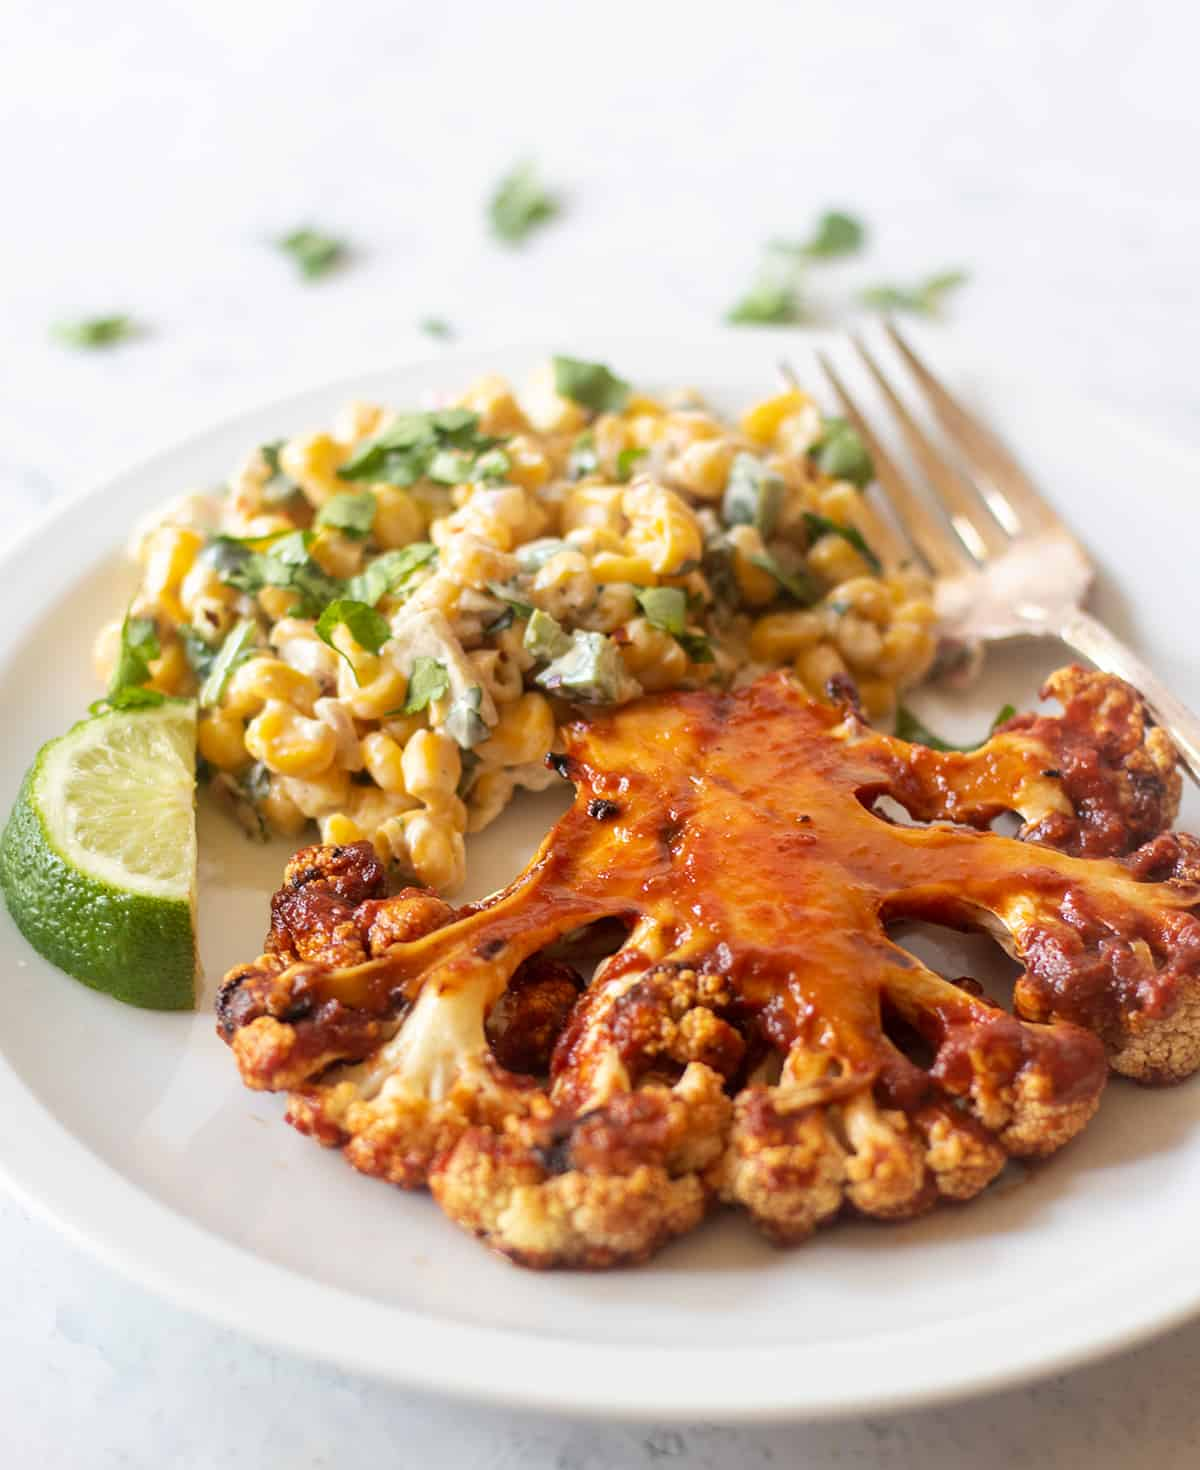 Grilled cauliflower steak with barbecue sauce on a white plate with a side of mexican street corn salad and a lime wedge. A silver fork on the plate for serving.